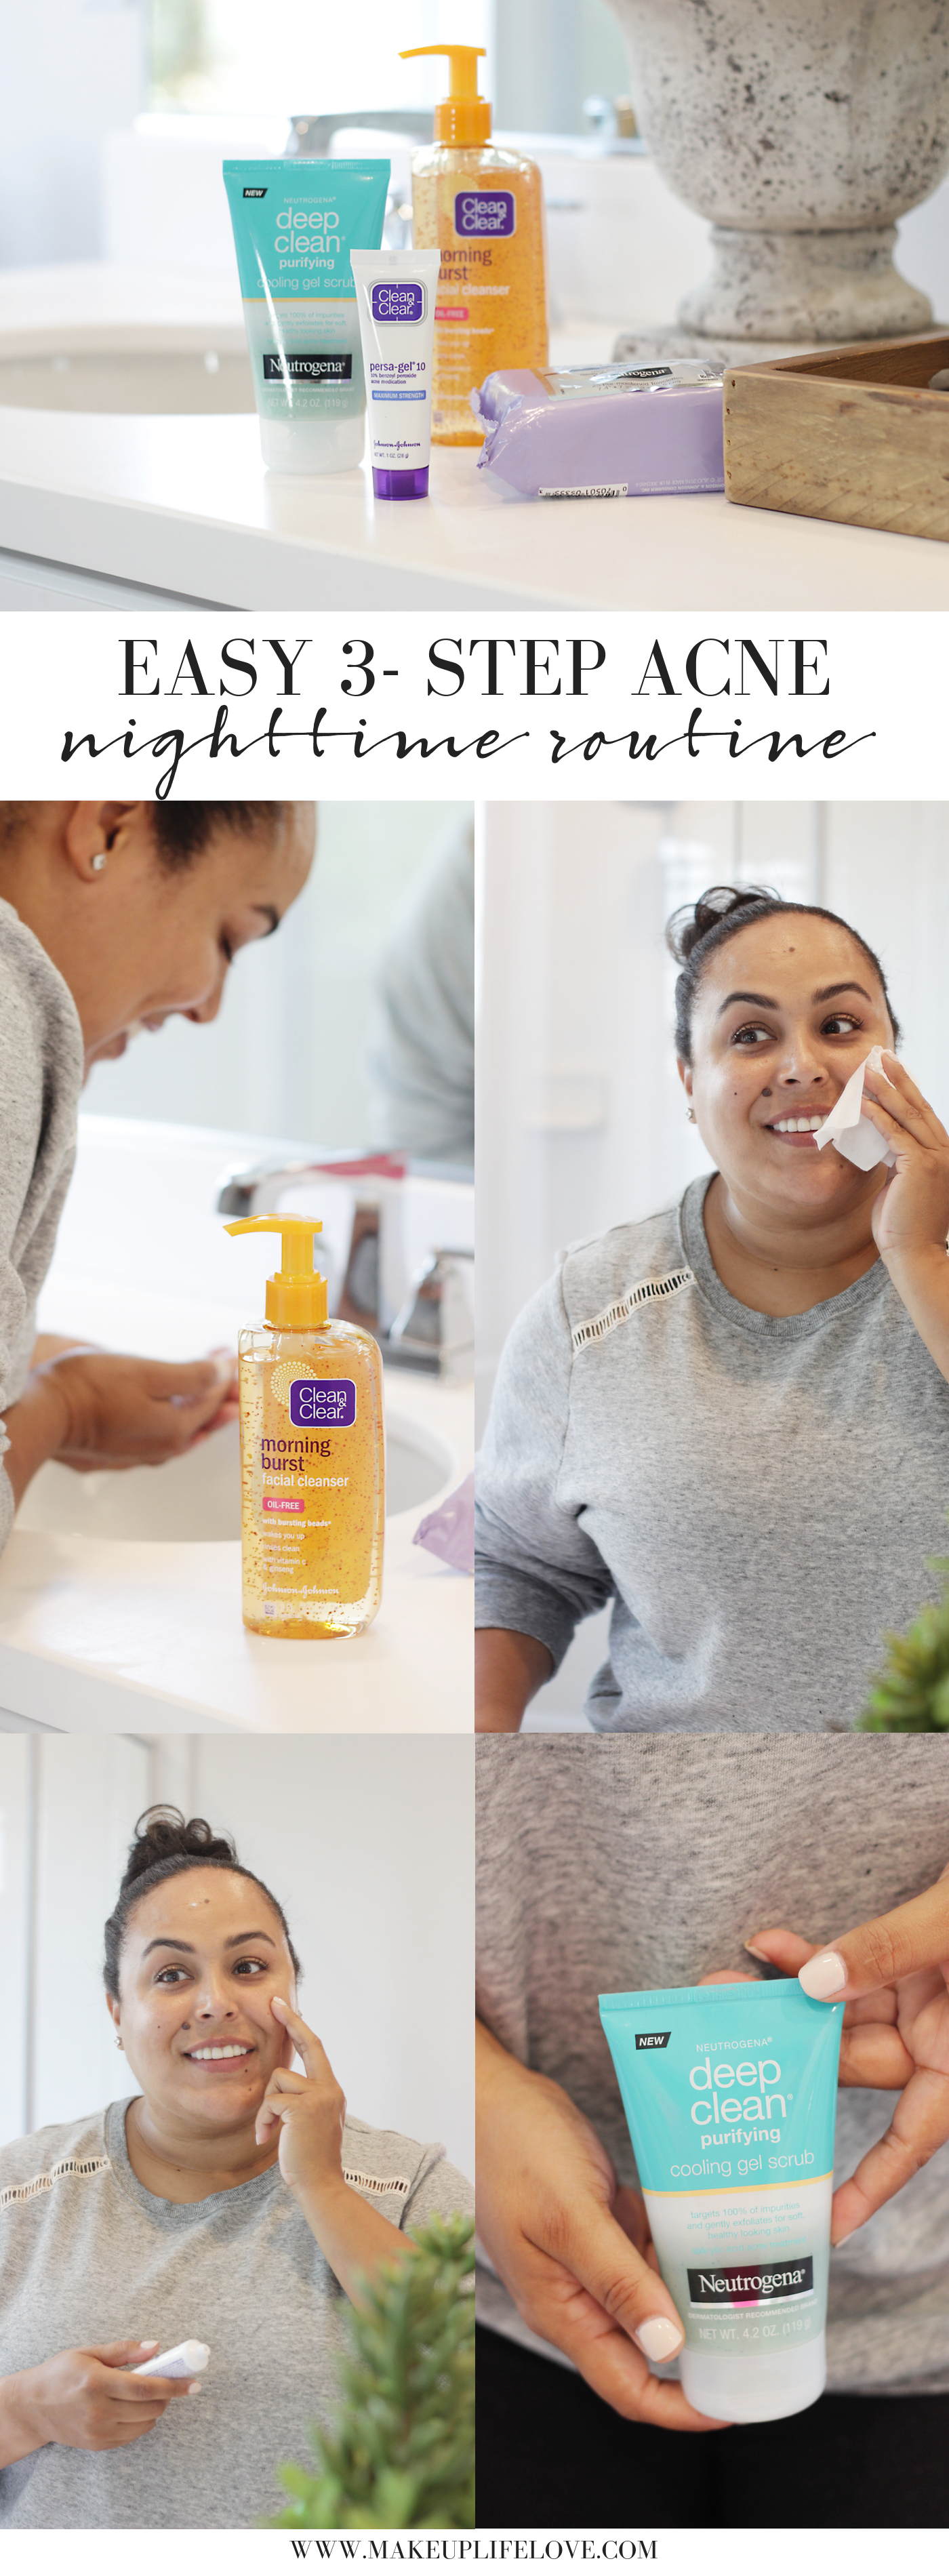 Breakouts SUCK! Time to say goodbye to pesky breakouts and hello to glowing skin. Makeup Life and Love is sharing an EASY 3 Step Acne Nighttime Routine that is perfect for all ages.